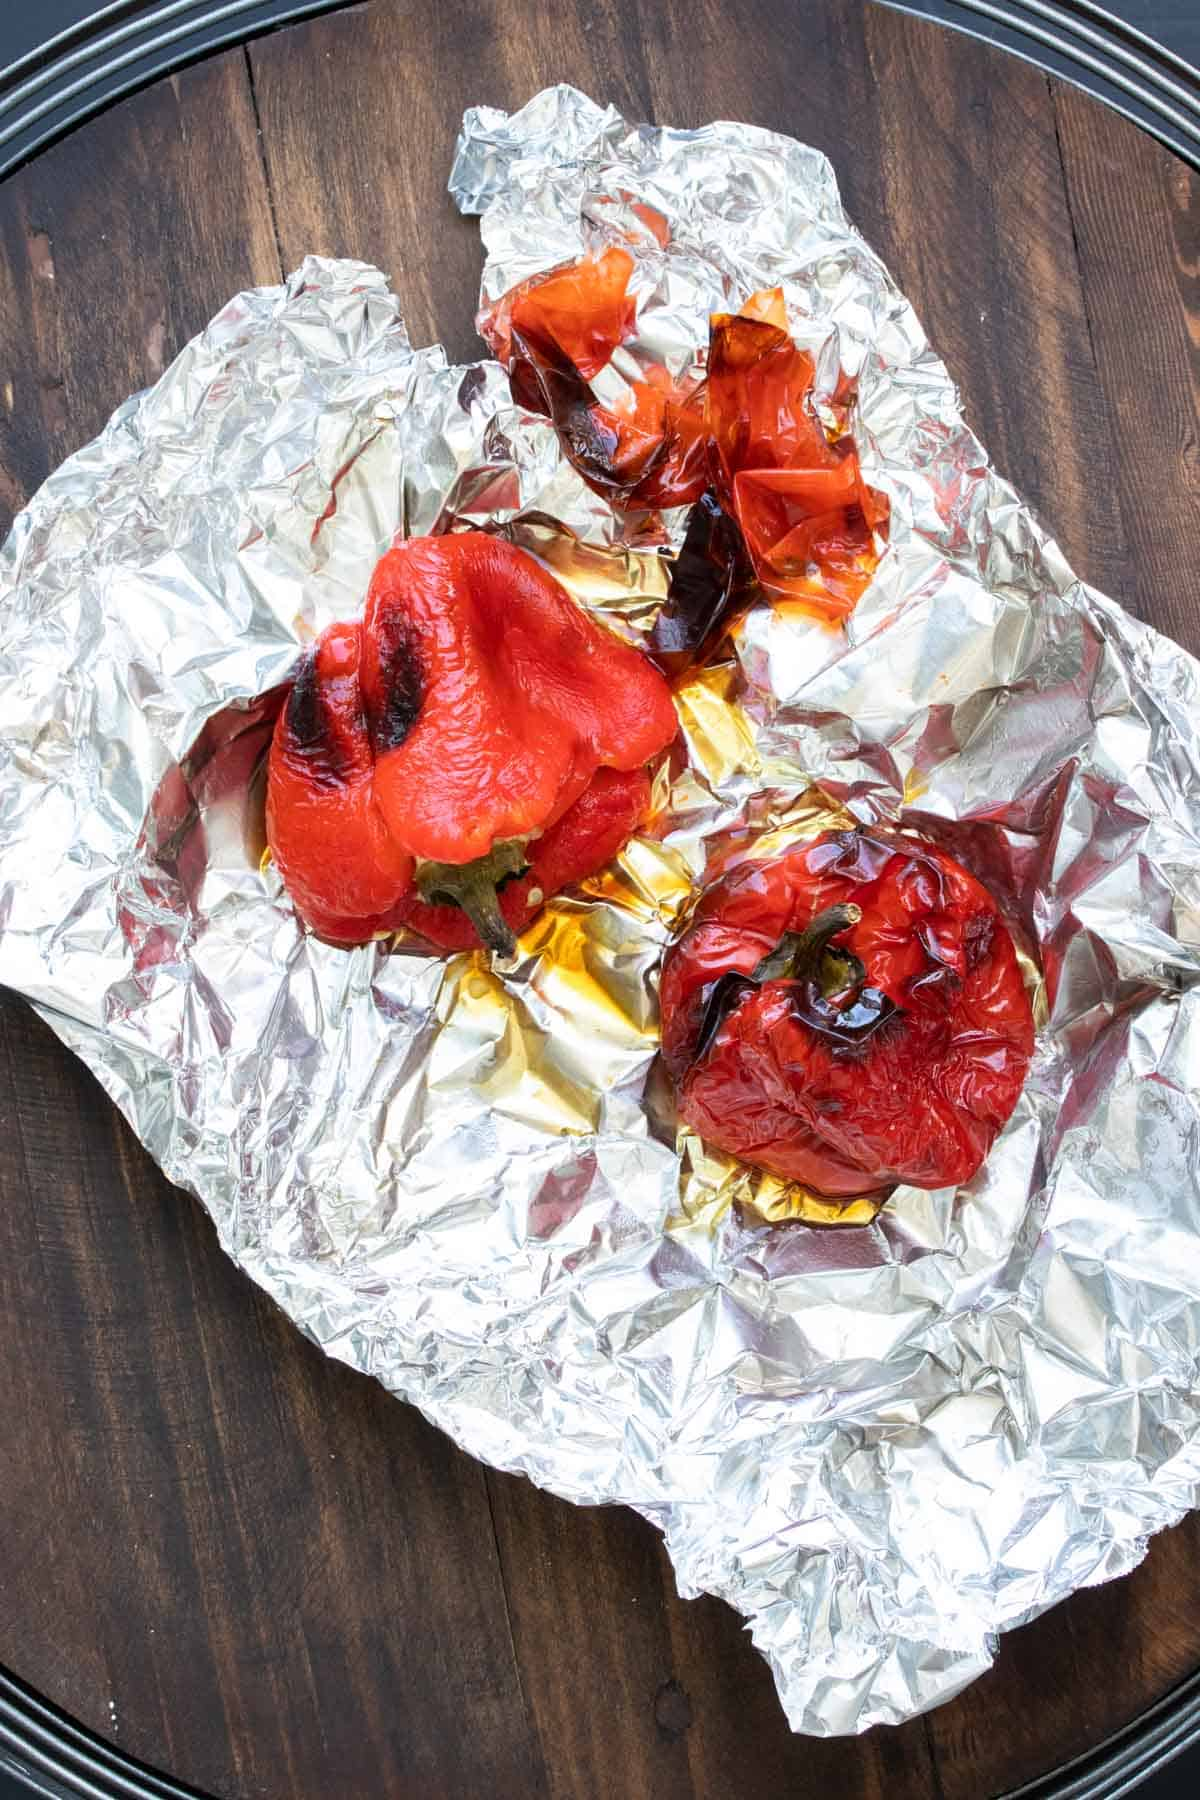 Tin foil with two roasted red peppers on it